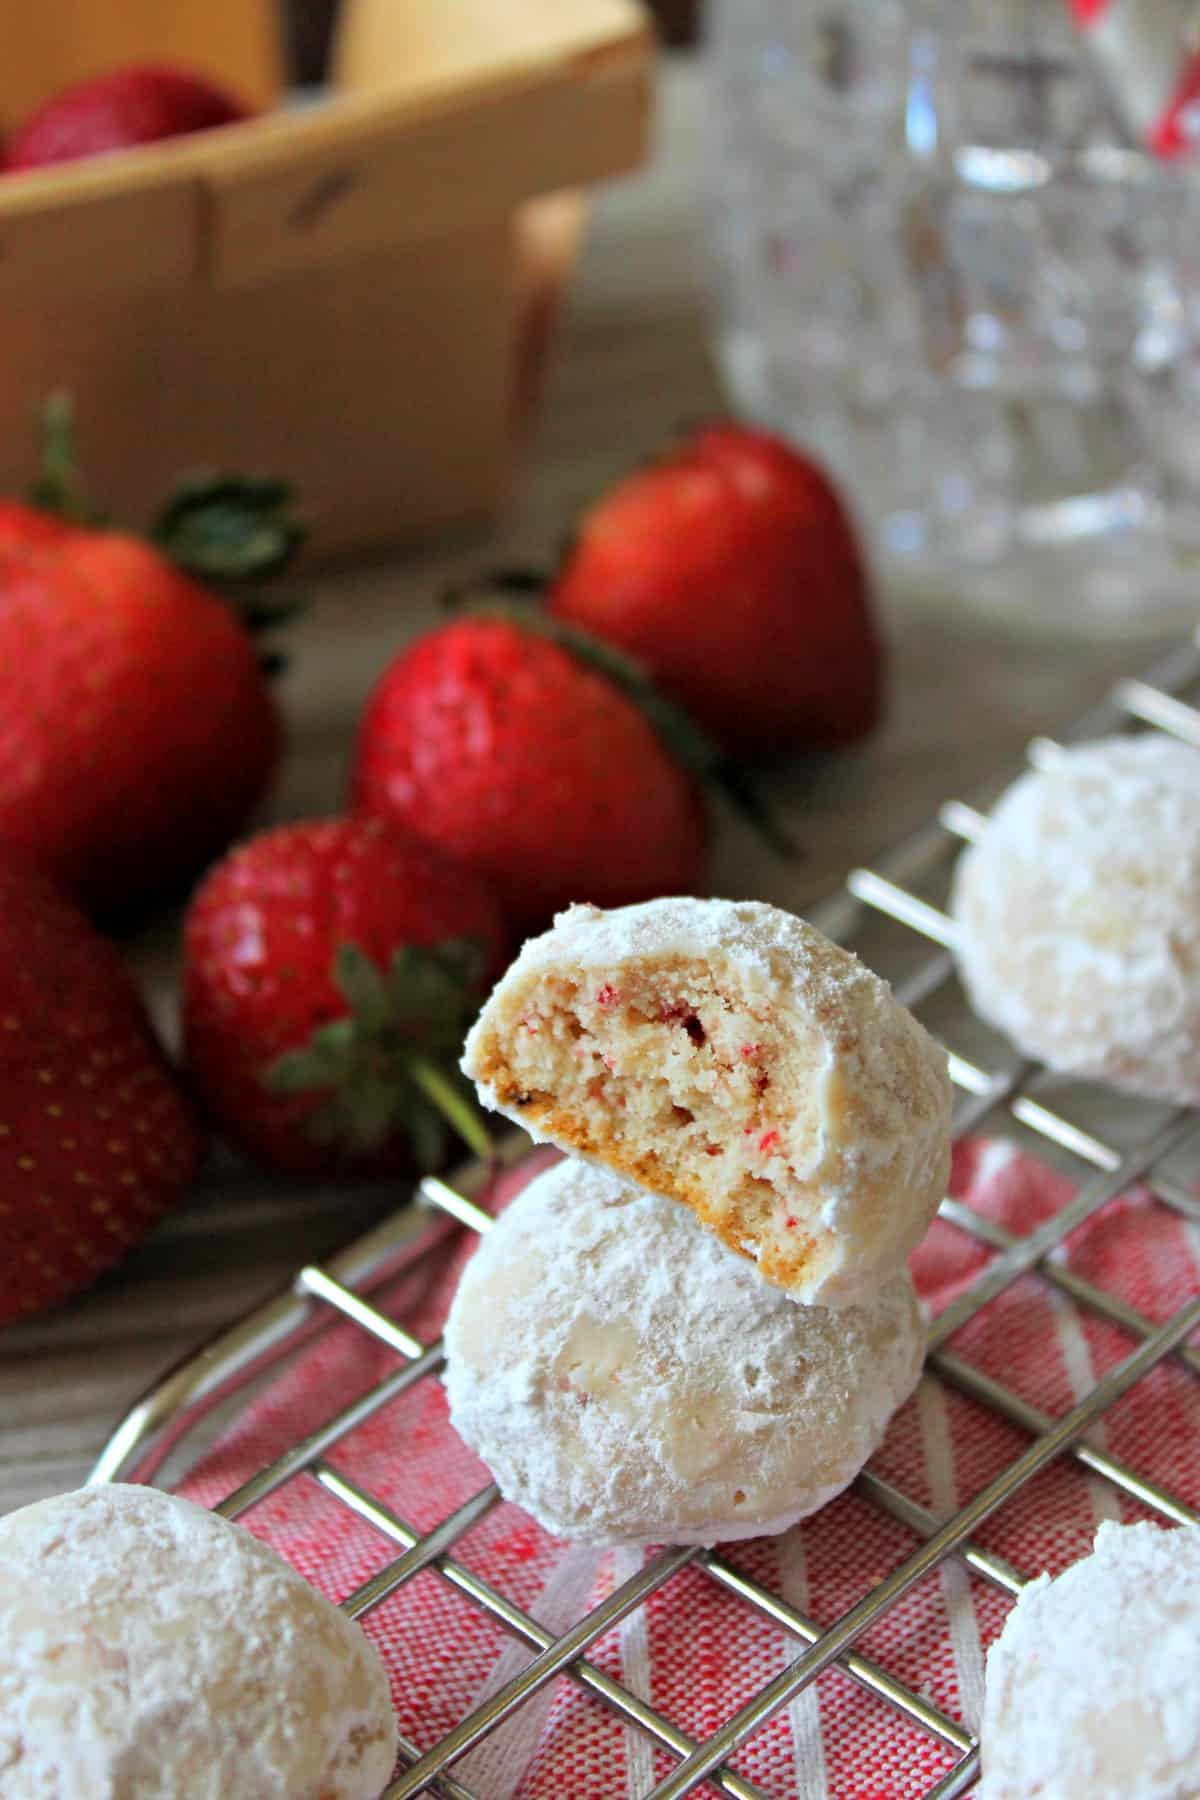 Strawberry Meltaway Cookies! Crumbly and buttery like the classic version, this summery twist has the addition of pulverized freeze-dried strawberries giving them a hint of fruitiness. Finished off with a toss in powdered sugar, these easy-to-make cookies are a sweet summer treat you won't mind turning the oven on for!